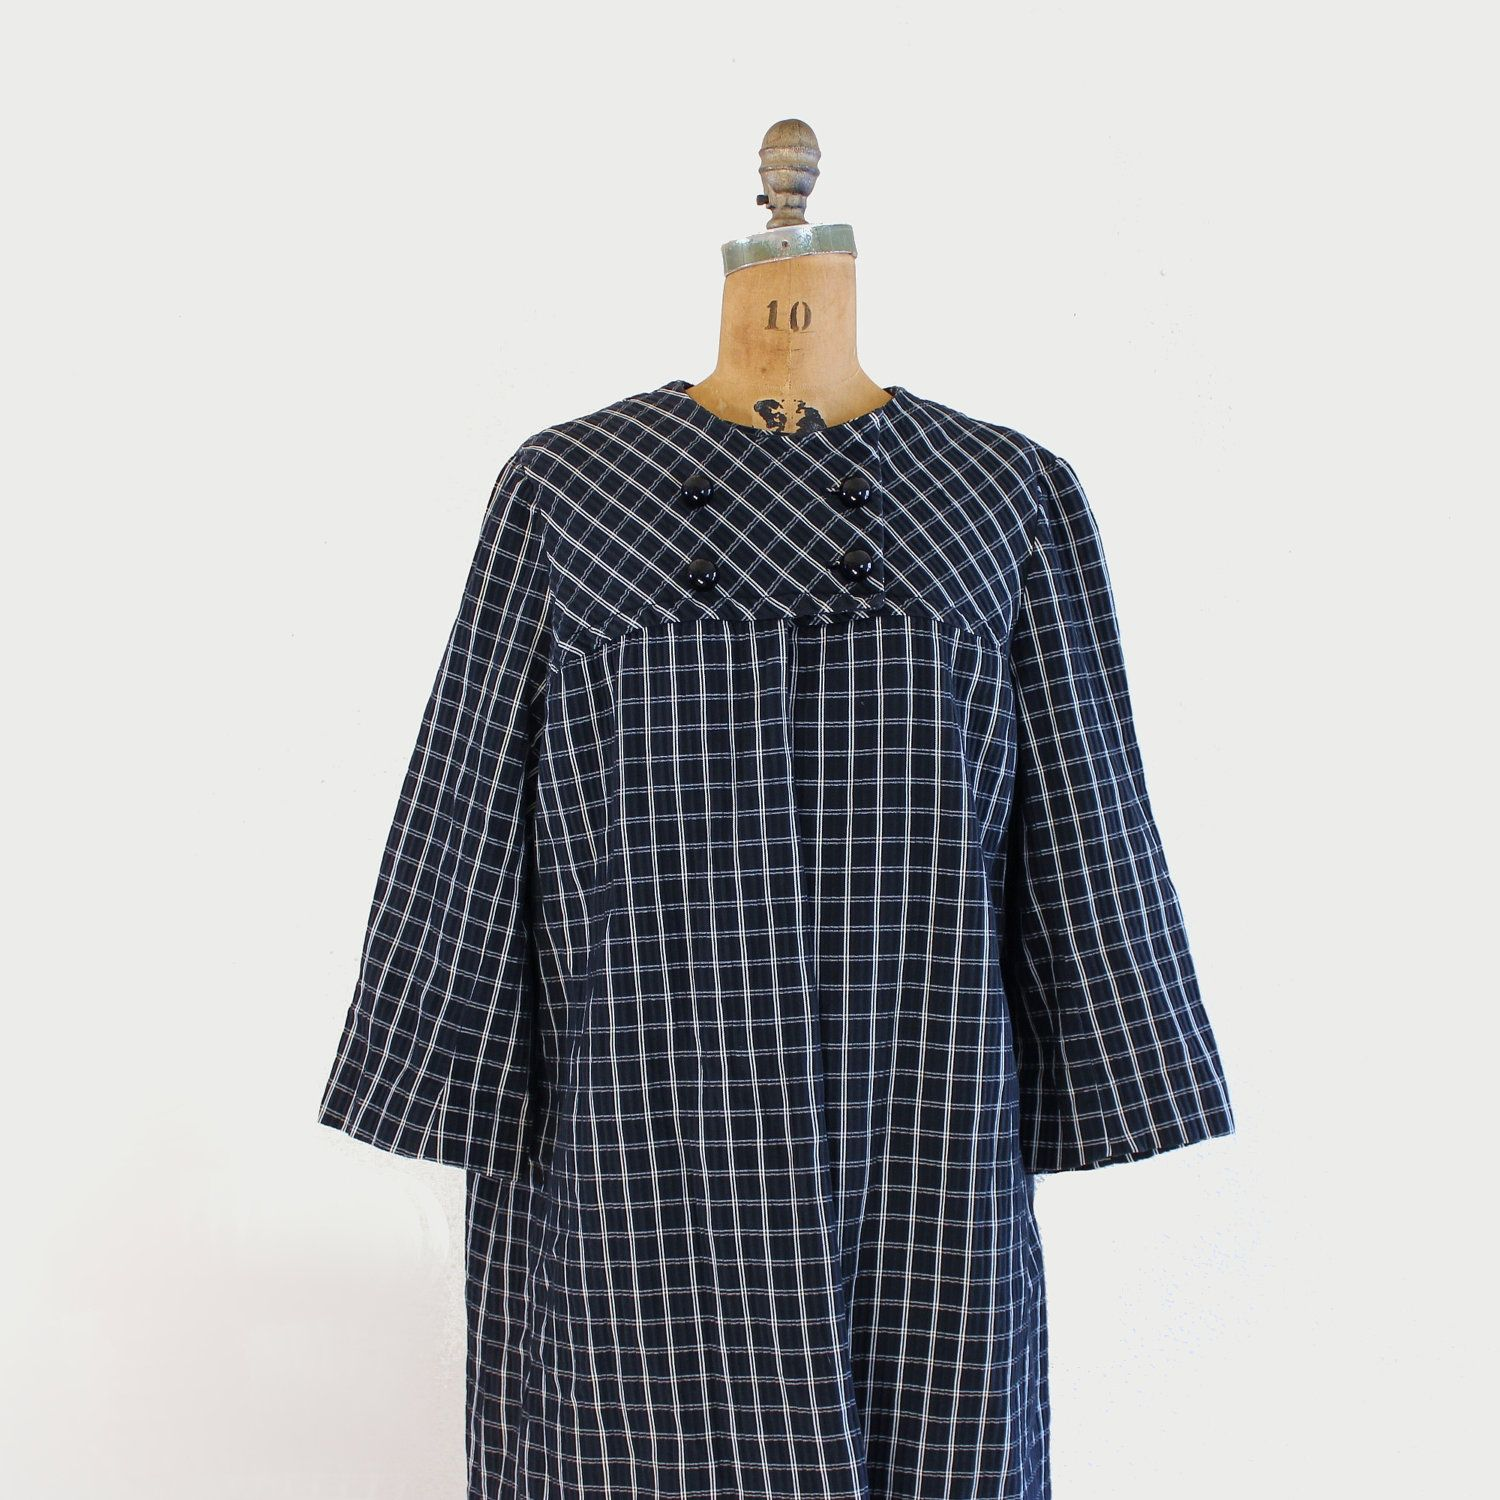 vintage 50s 60s swing coat - black & white checked plaid - $68 <3 the way it buttons up